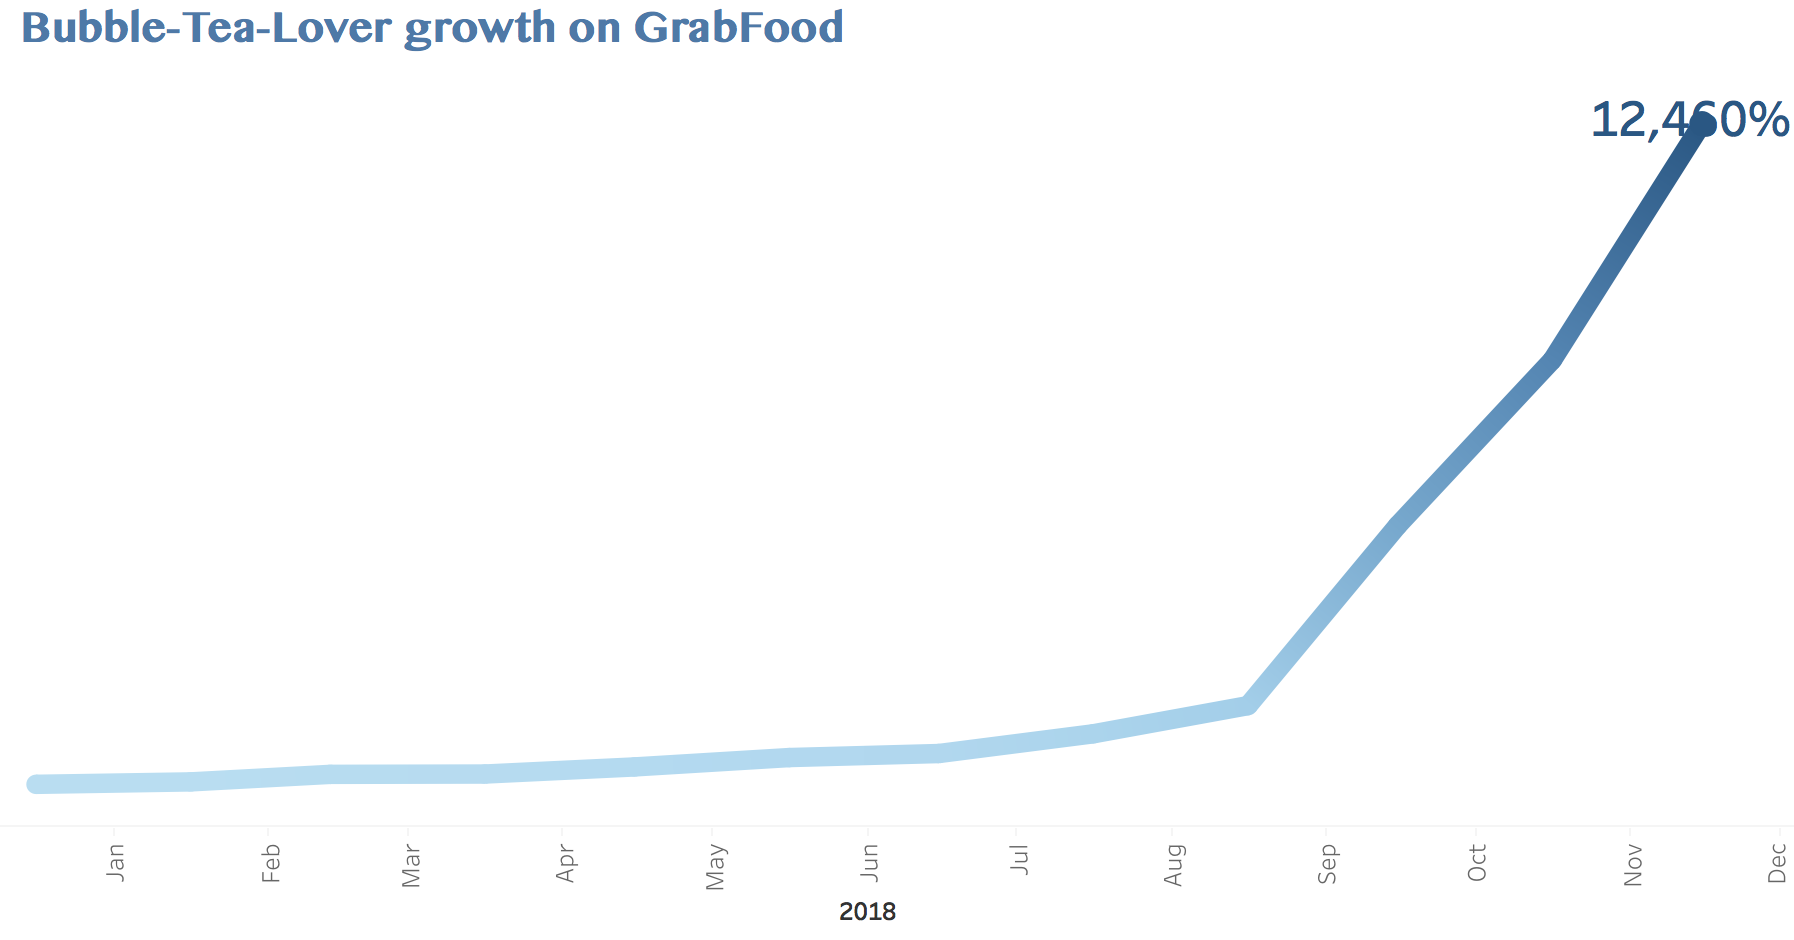 Bubble-Tea-Lover growth on GrabFood